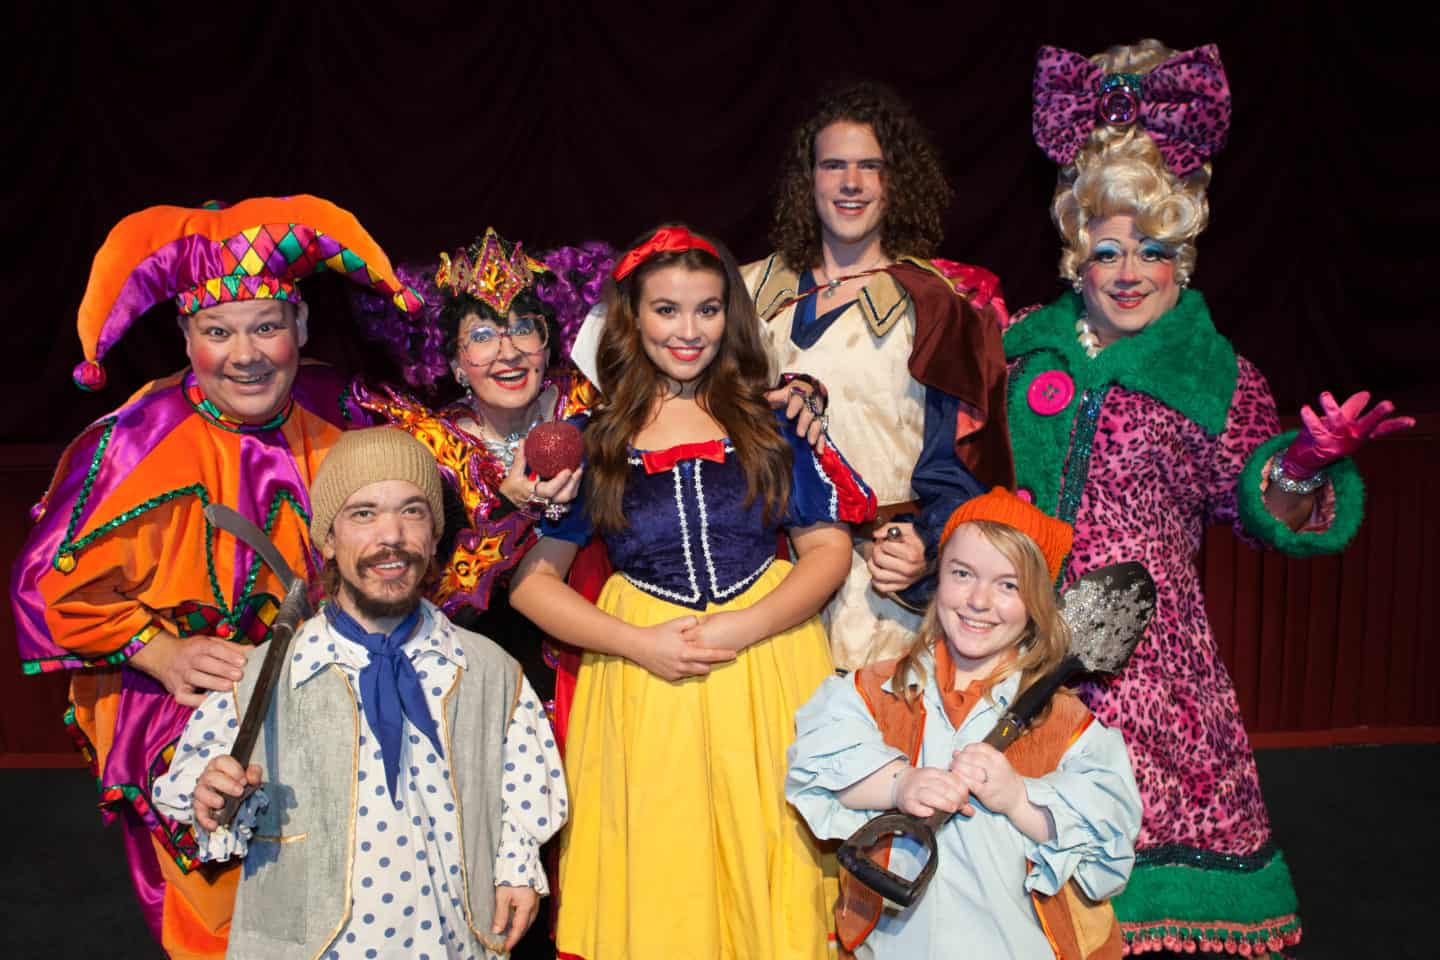 18092001 September 20th 2018 MalvernSnow White and the Seven Dwarfs, Malvern Theatres, Malvern, Worcestershire